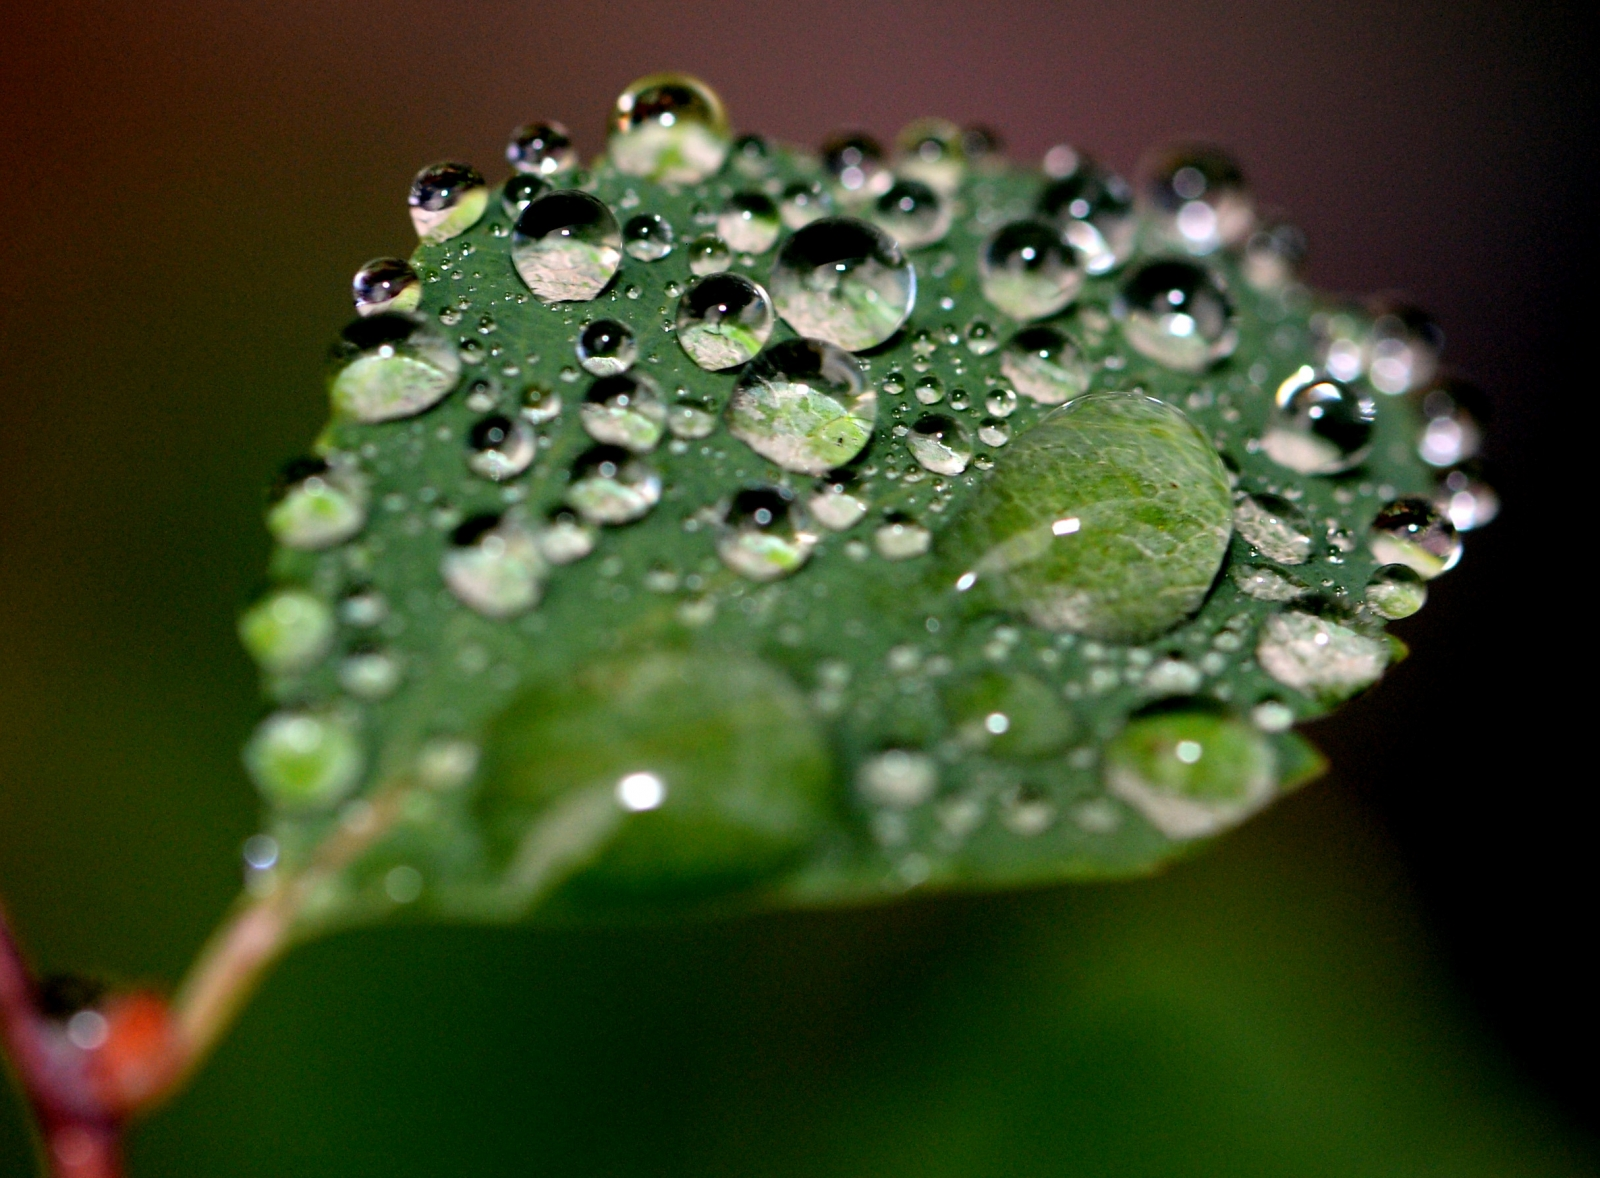 Droplets of water